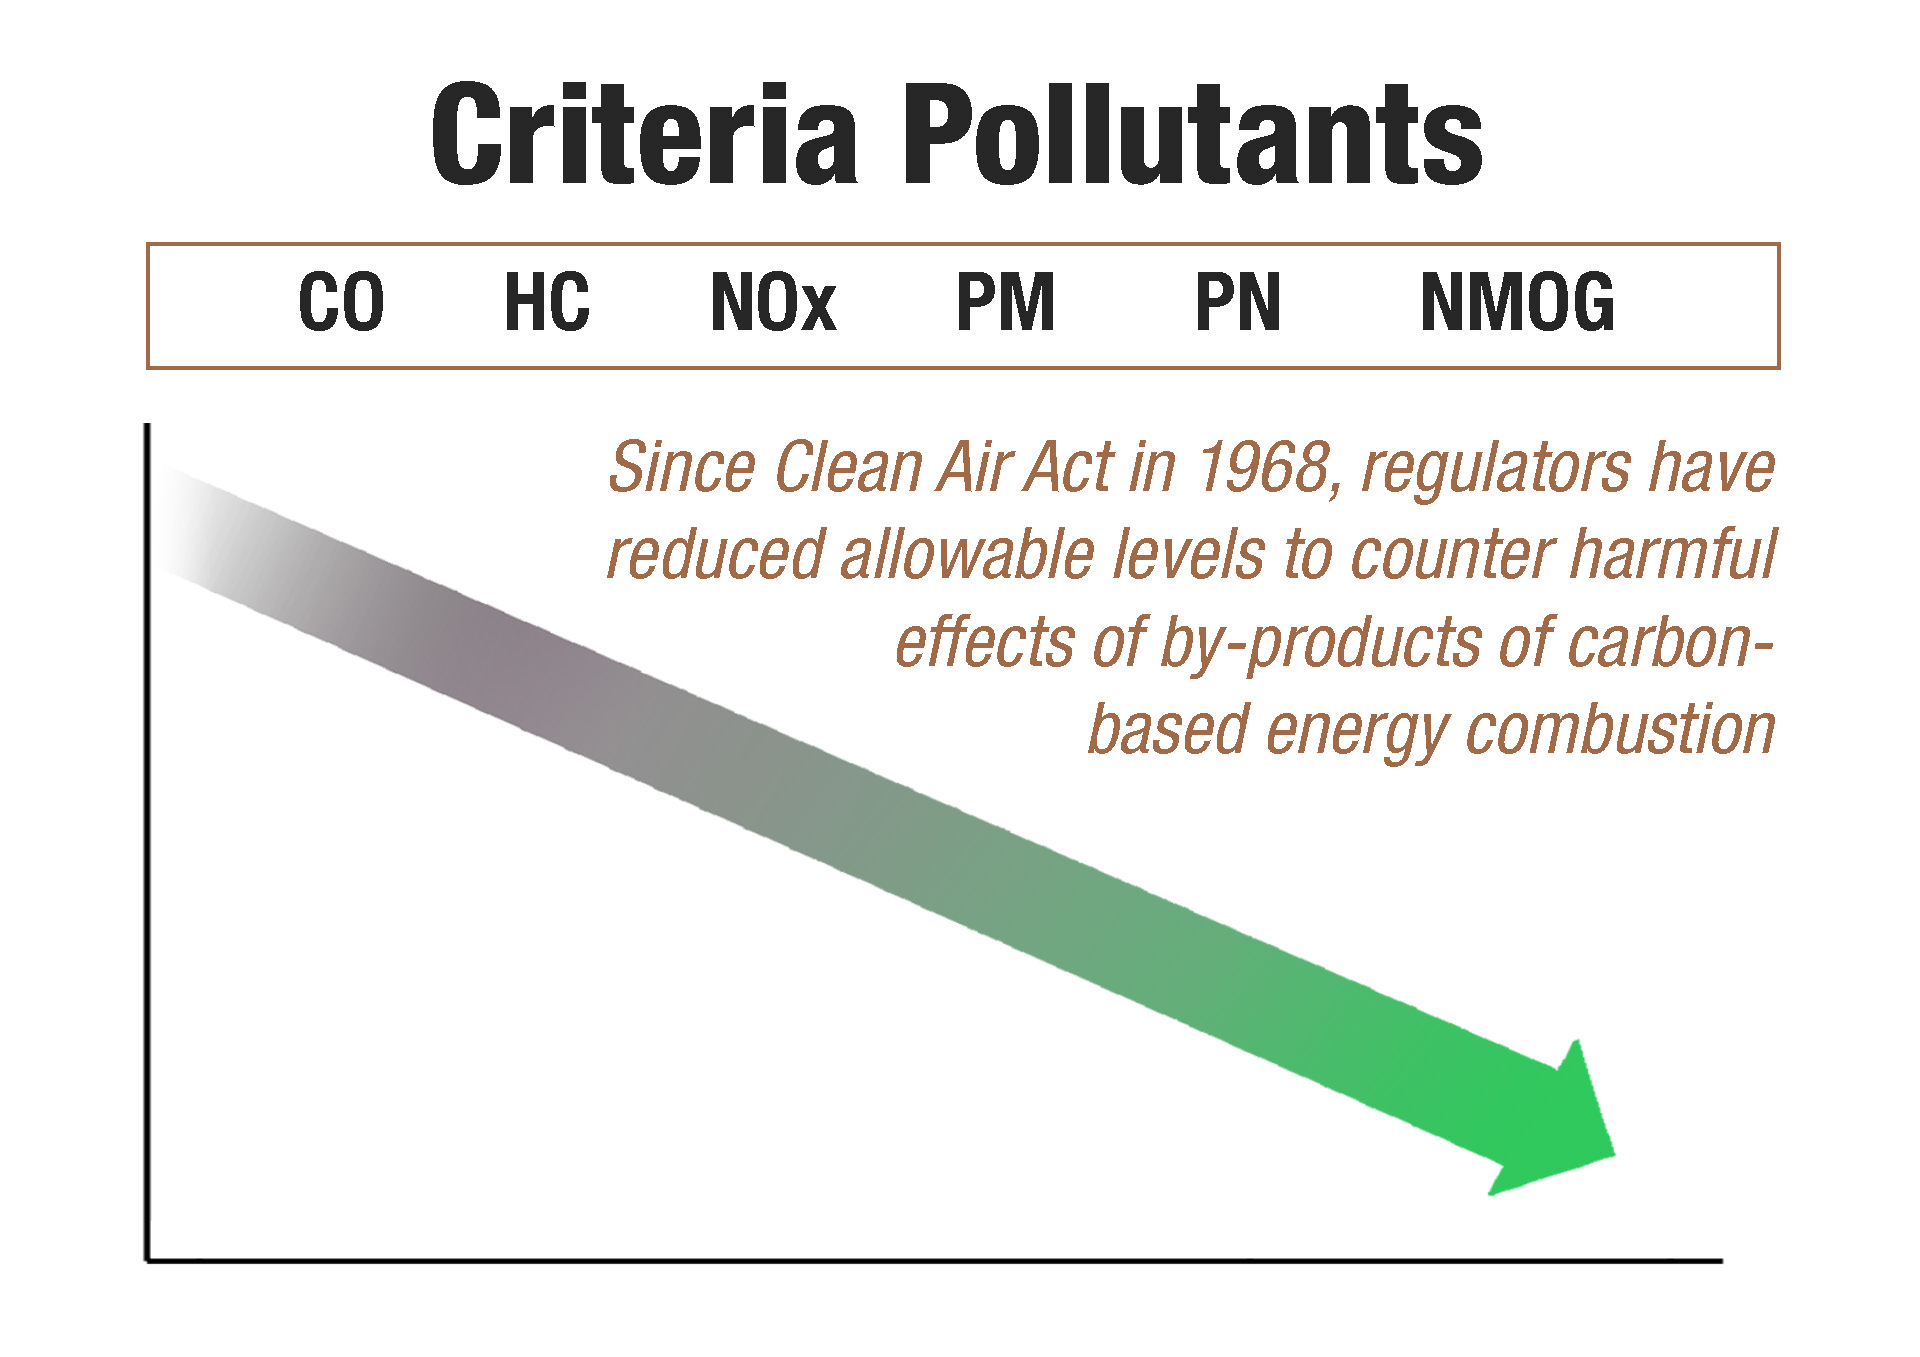 Criteria_Pollutants_graphic